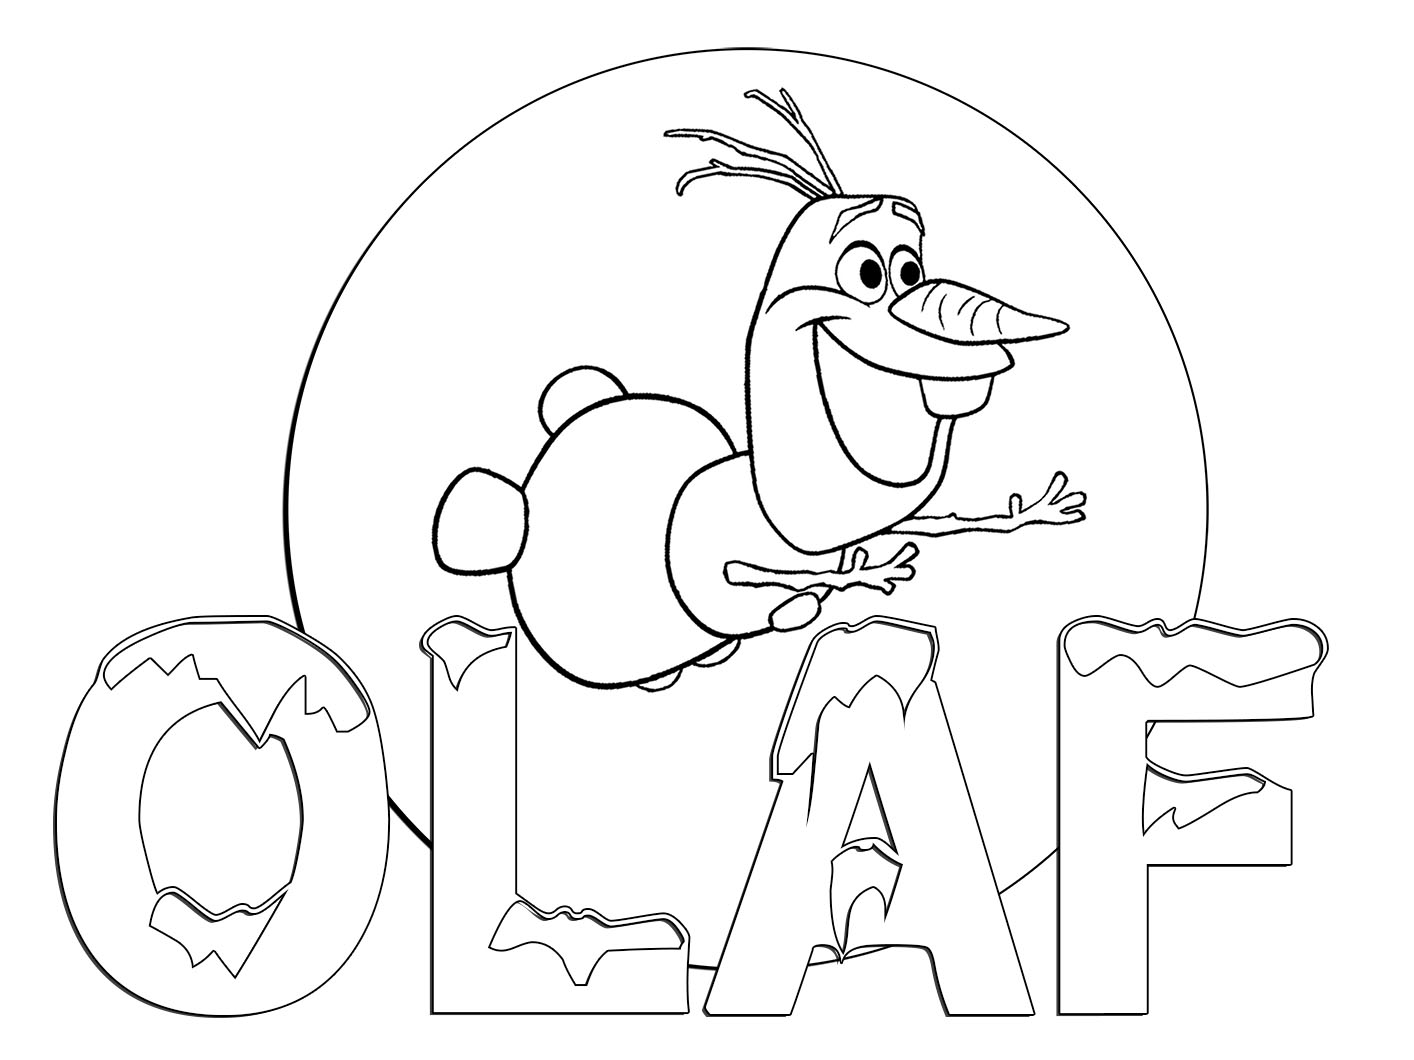 Frozens Olaf Coloring Pages Best Coloring Pages For Kids Free Colouring Books For Children